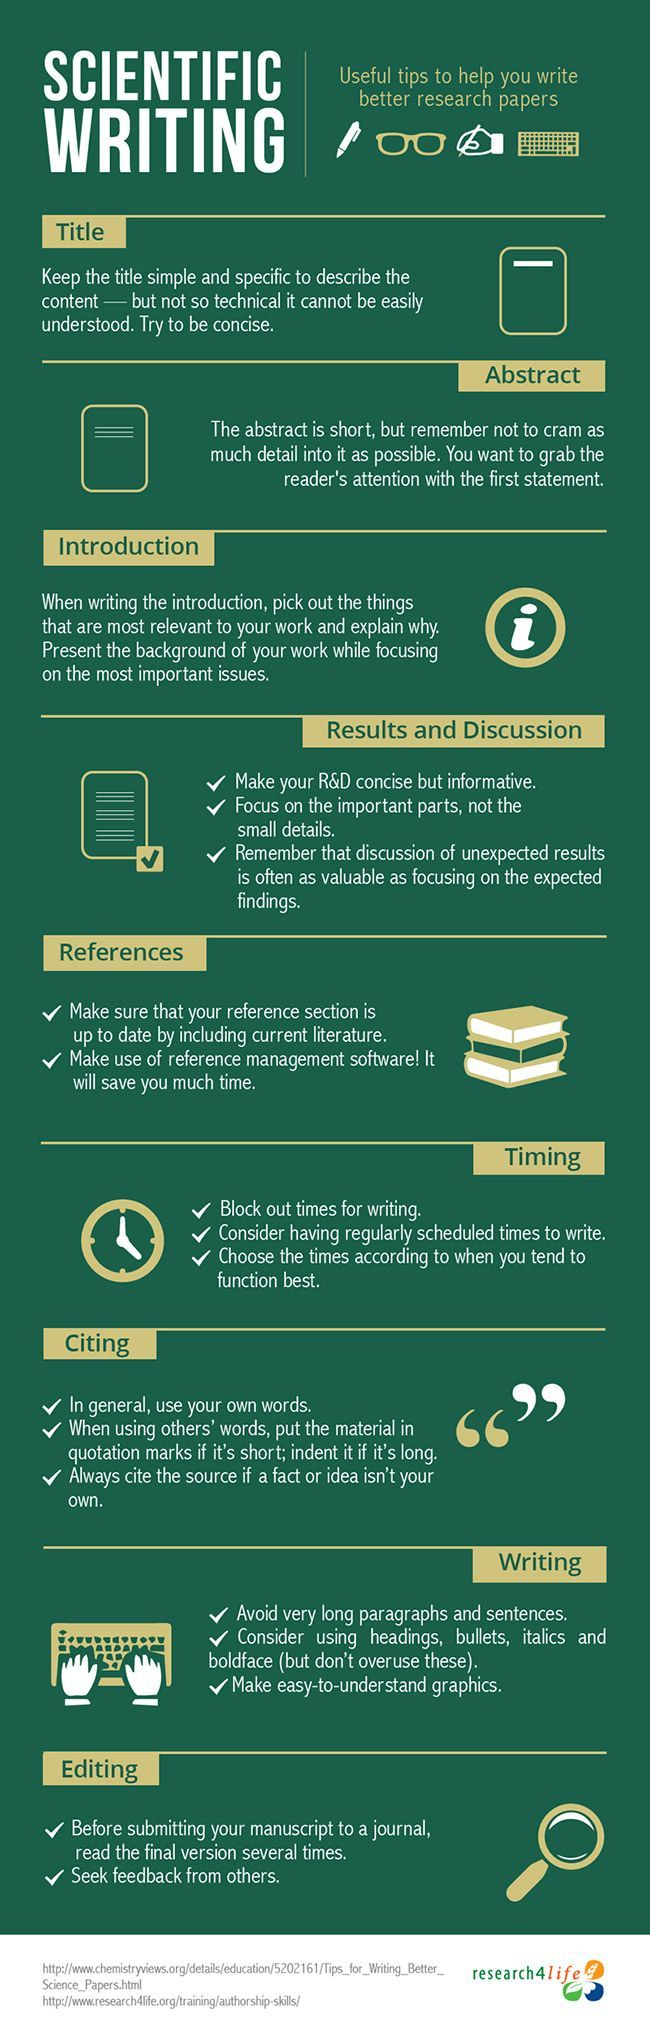 Infographic: How to write better science papers | Elsevier Connect